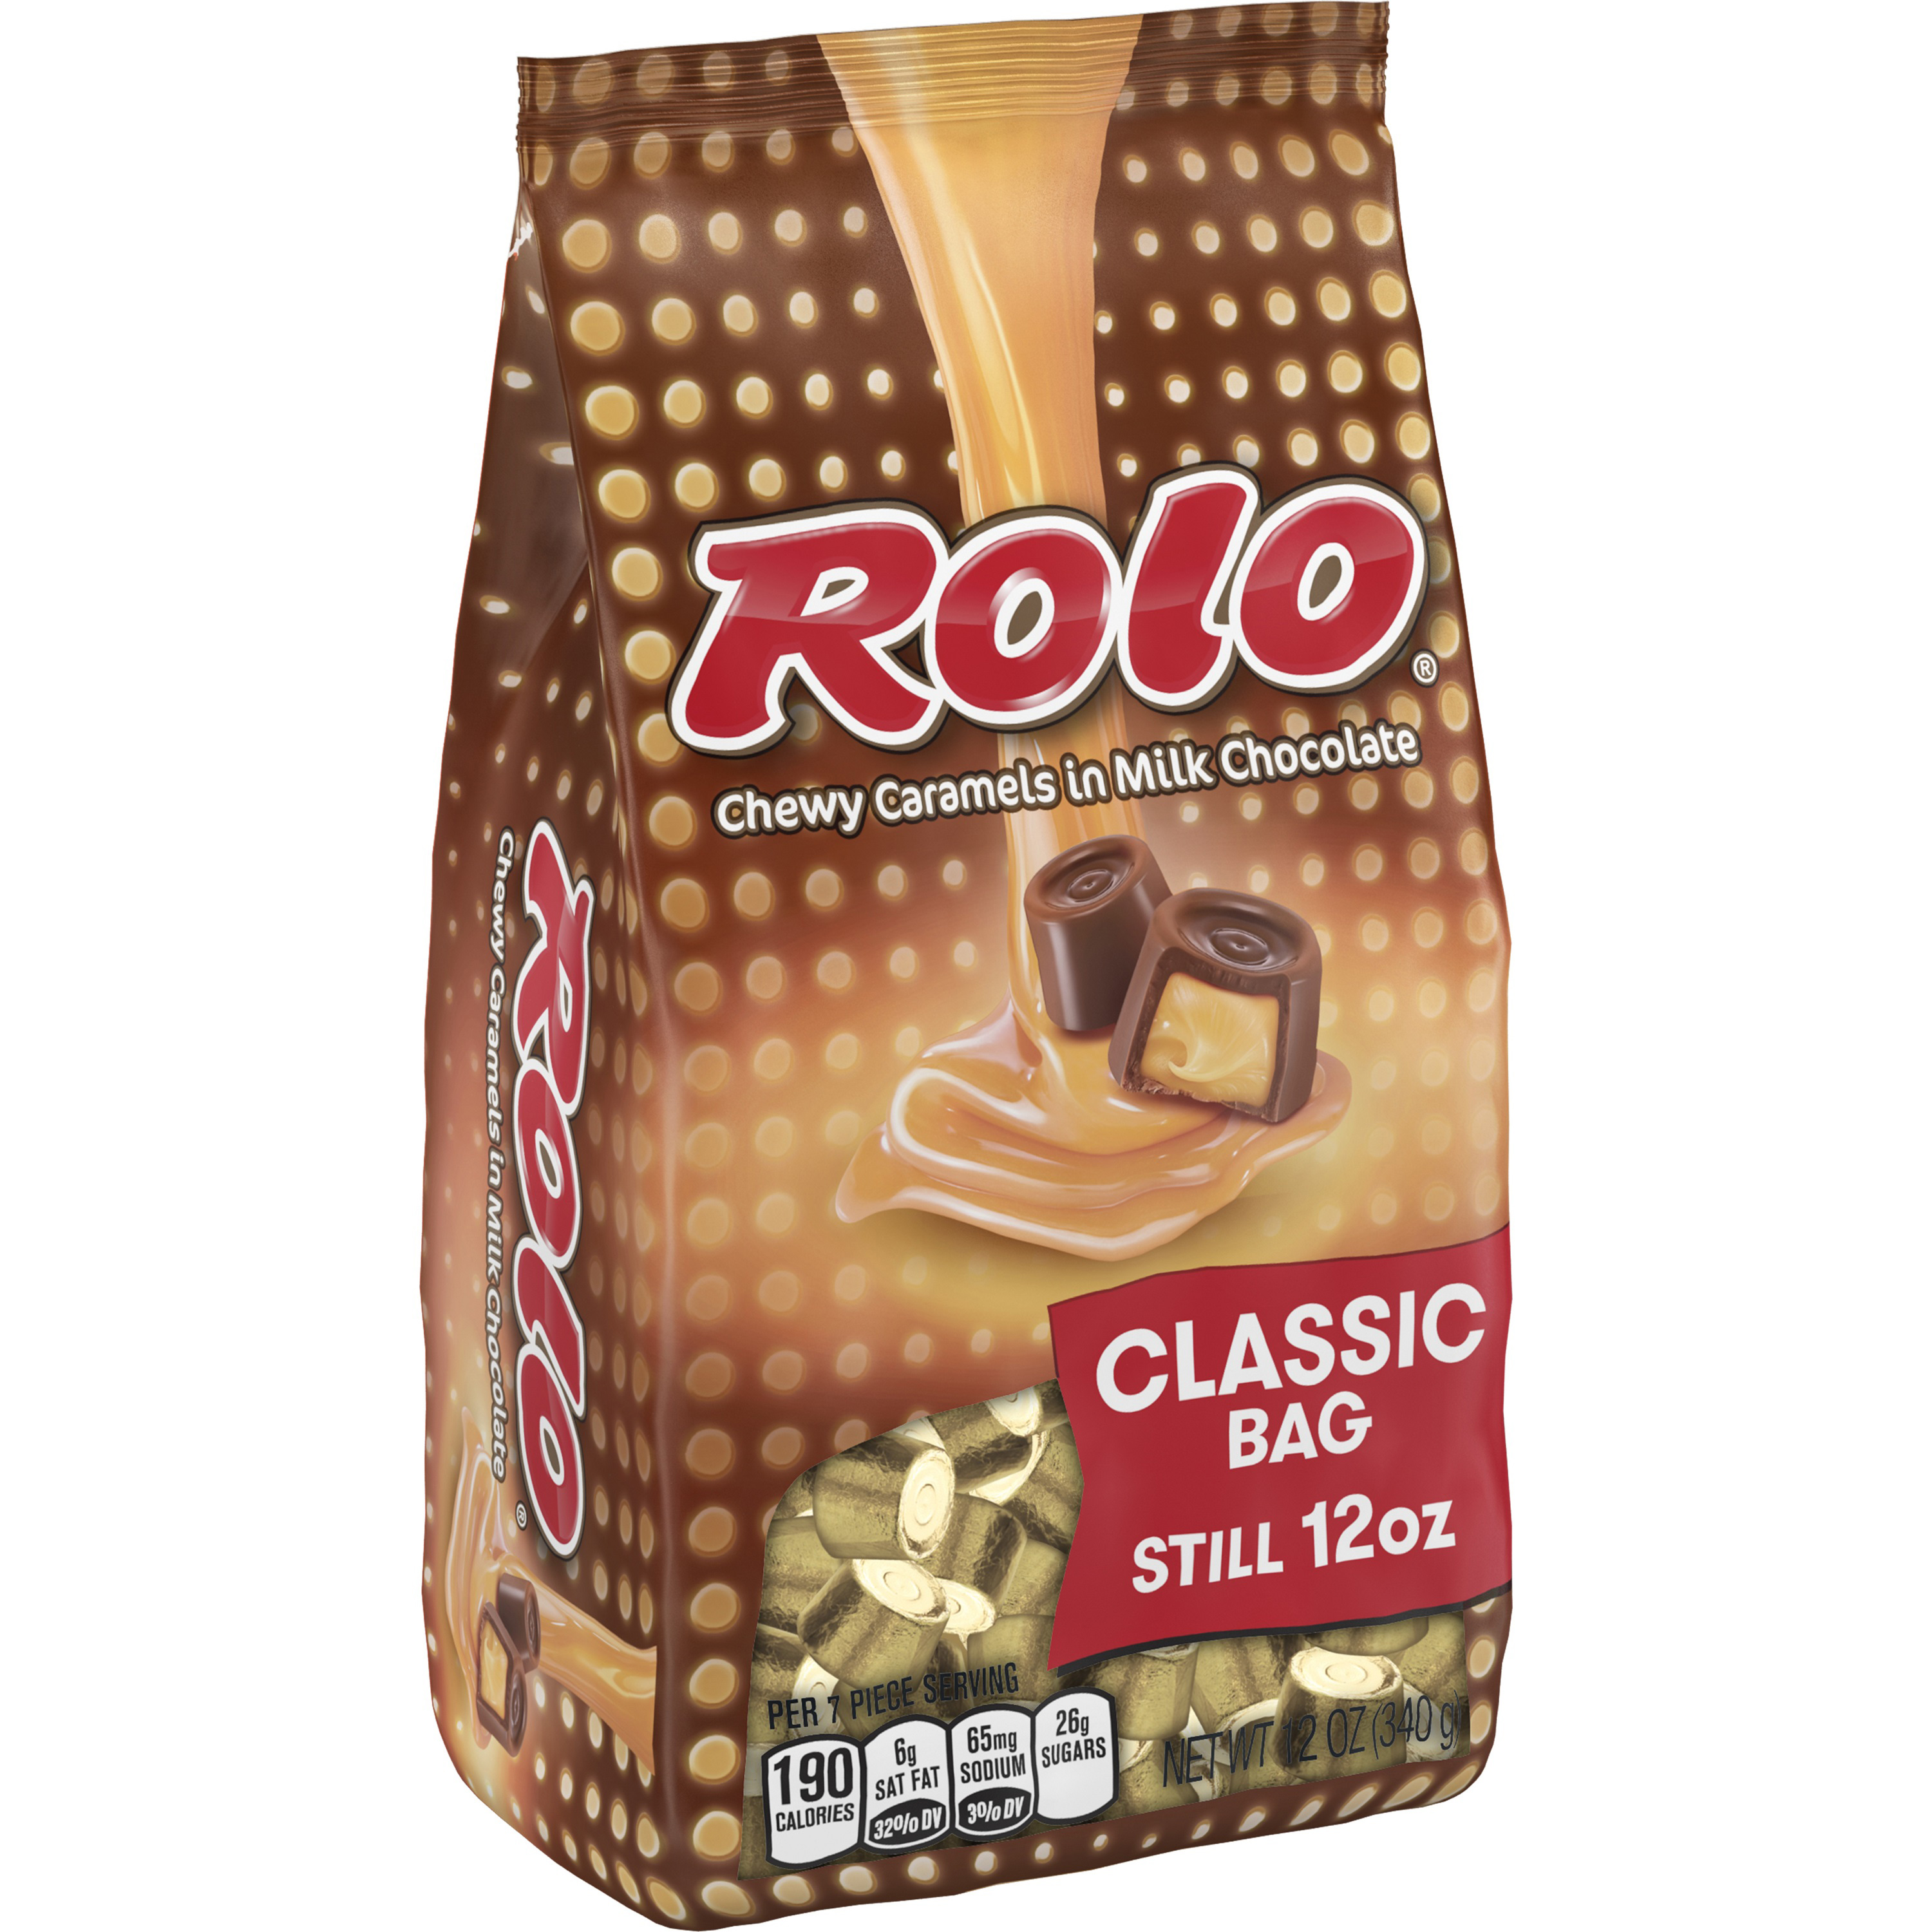 ROLO Chewy Caramels in Milk Chocolate, 12 oz by Hershey's